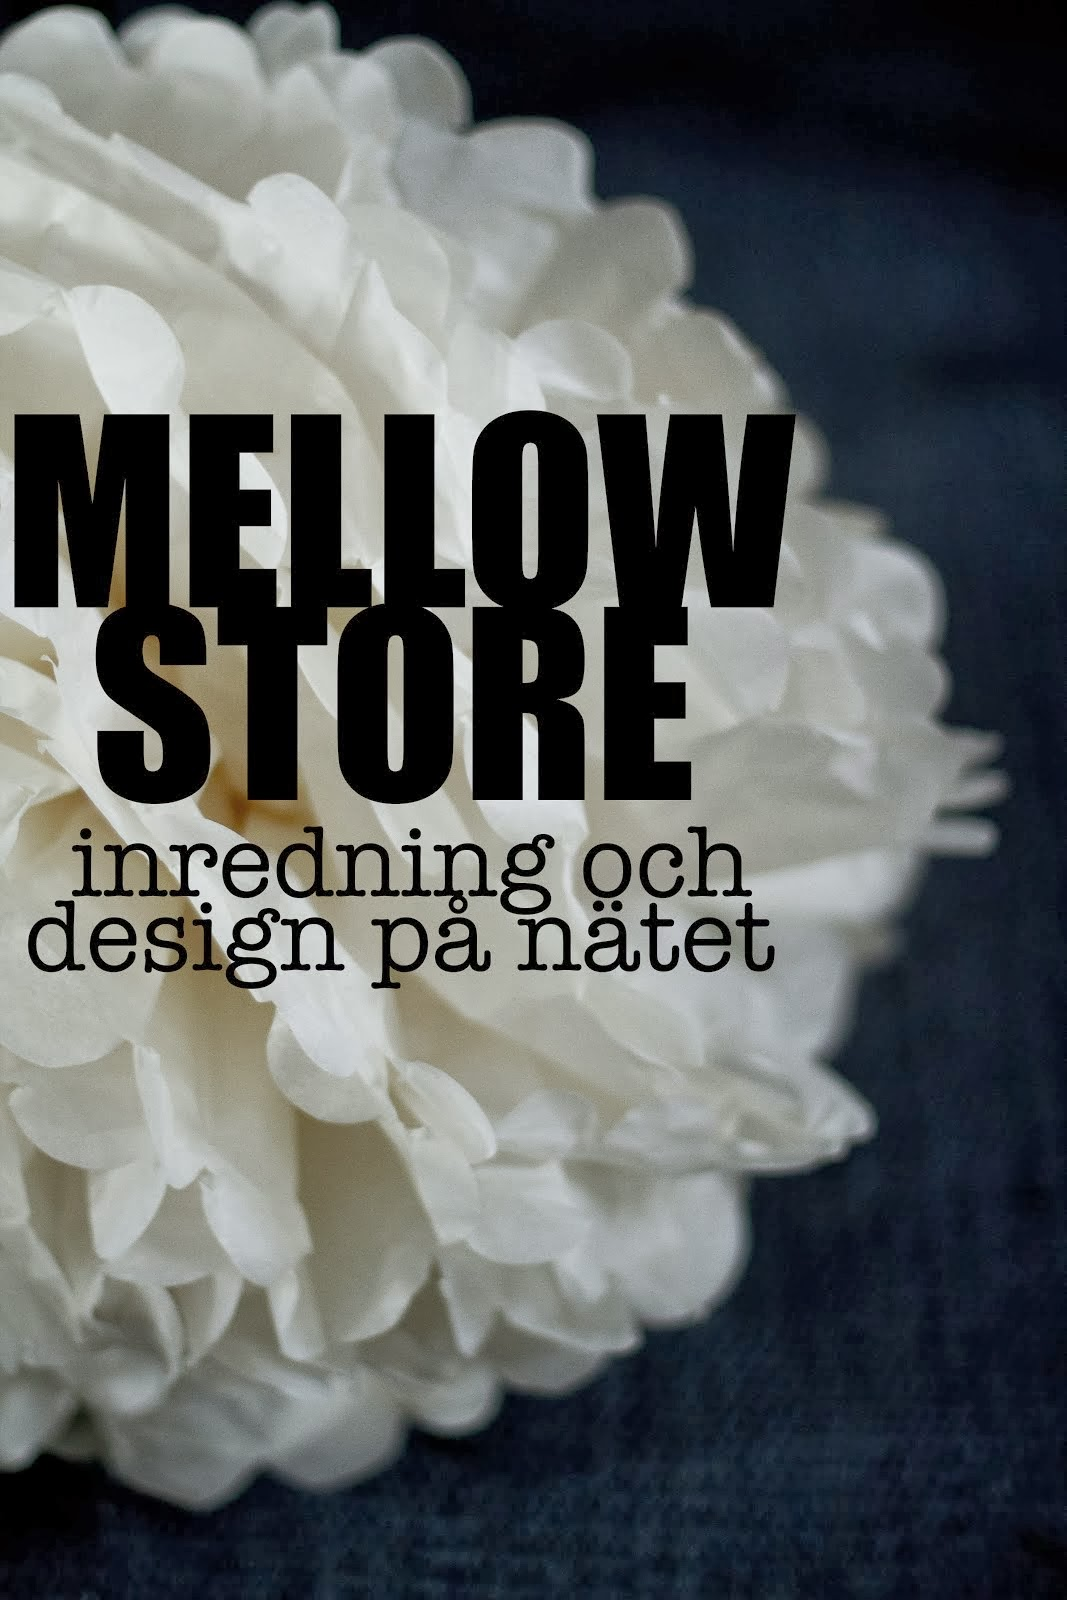 Mellow store